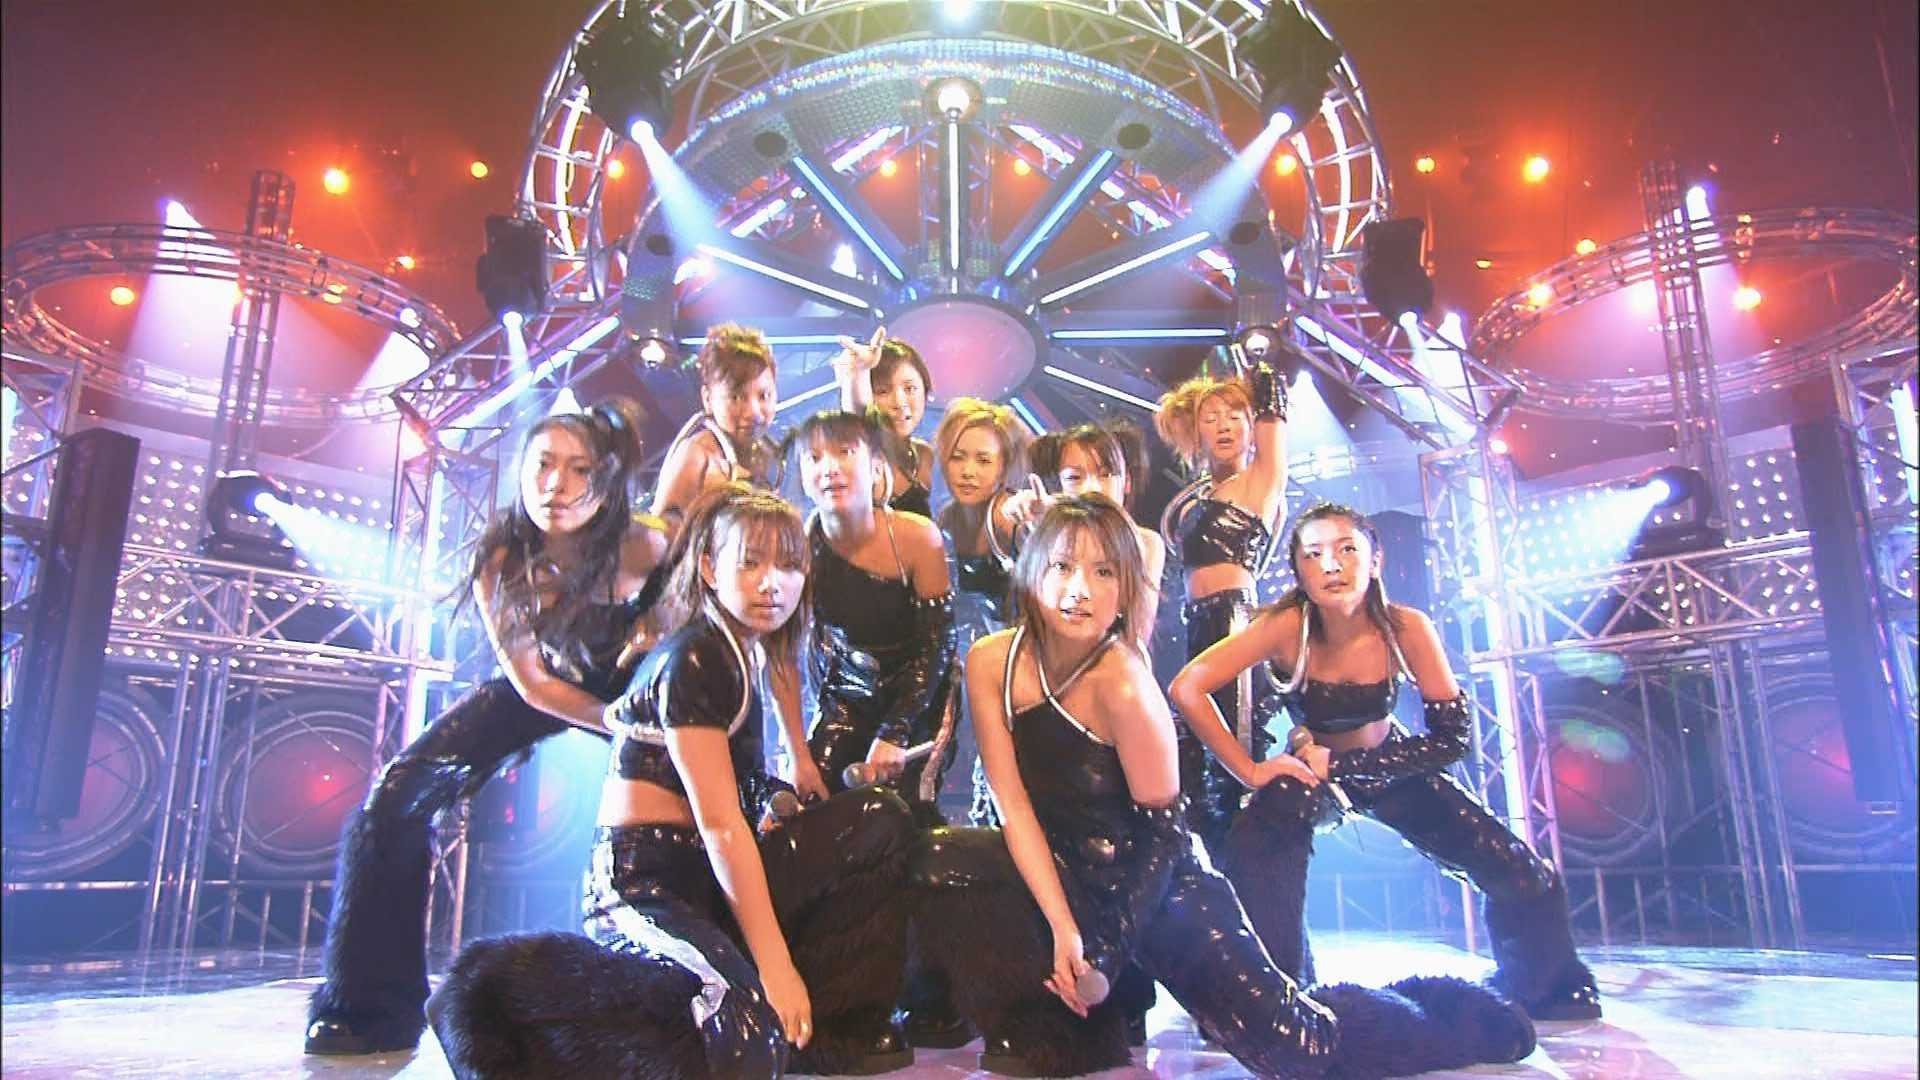 Renai revolution 21 by morning musume - 1 part 3